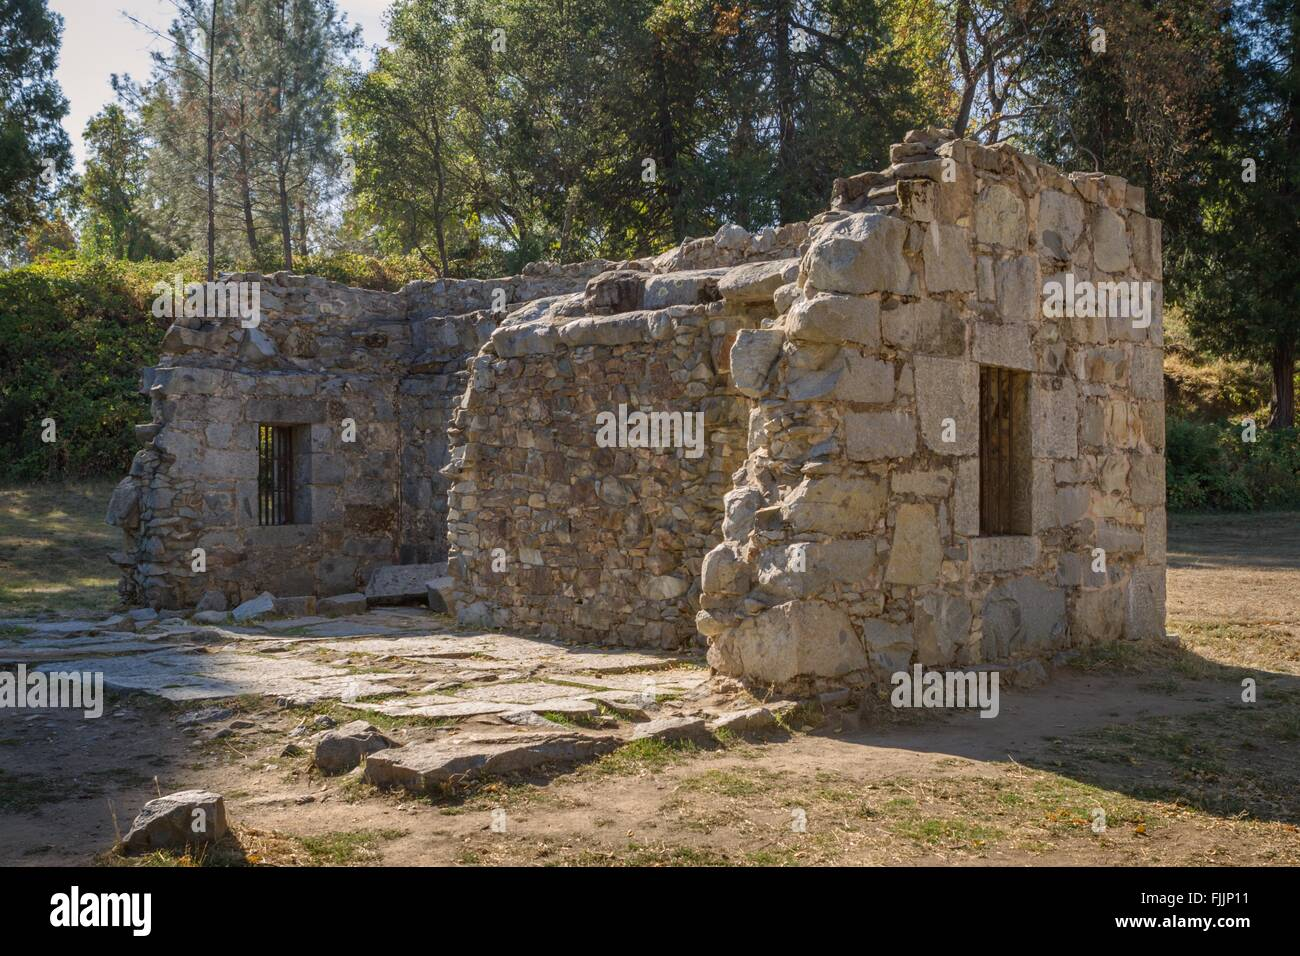 Jail ruin, Marshall Gold Discovery State Historic Park, Coloma, California. - Stock Image